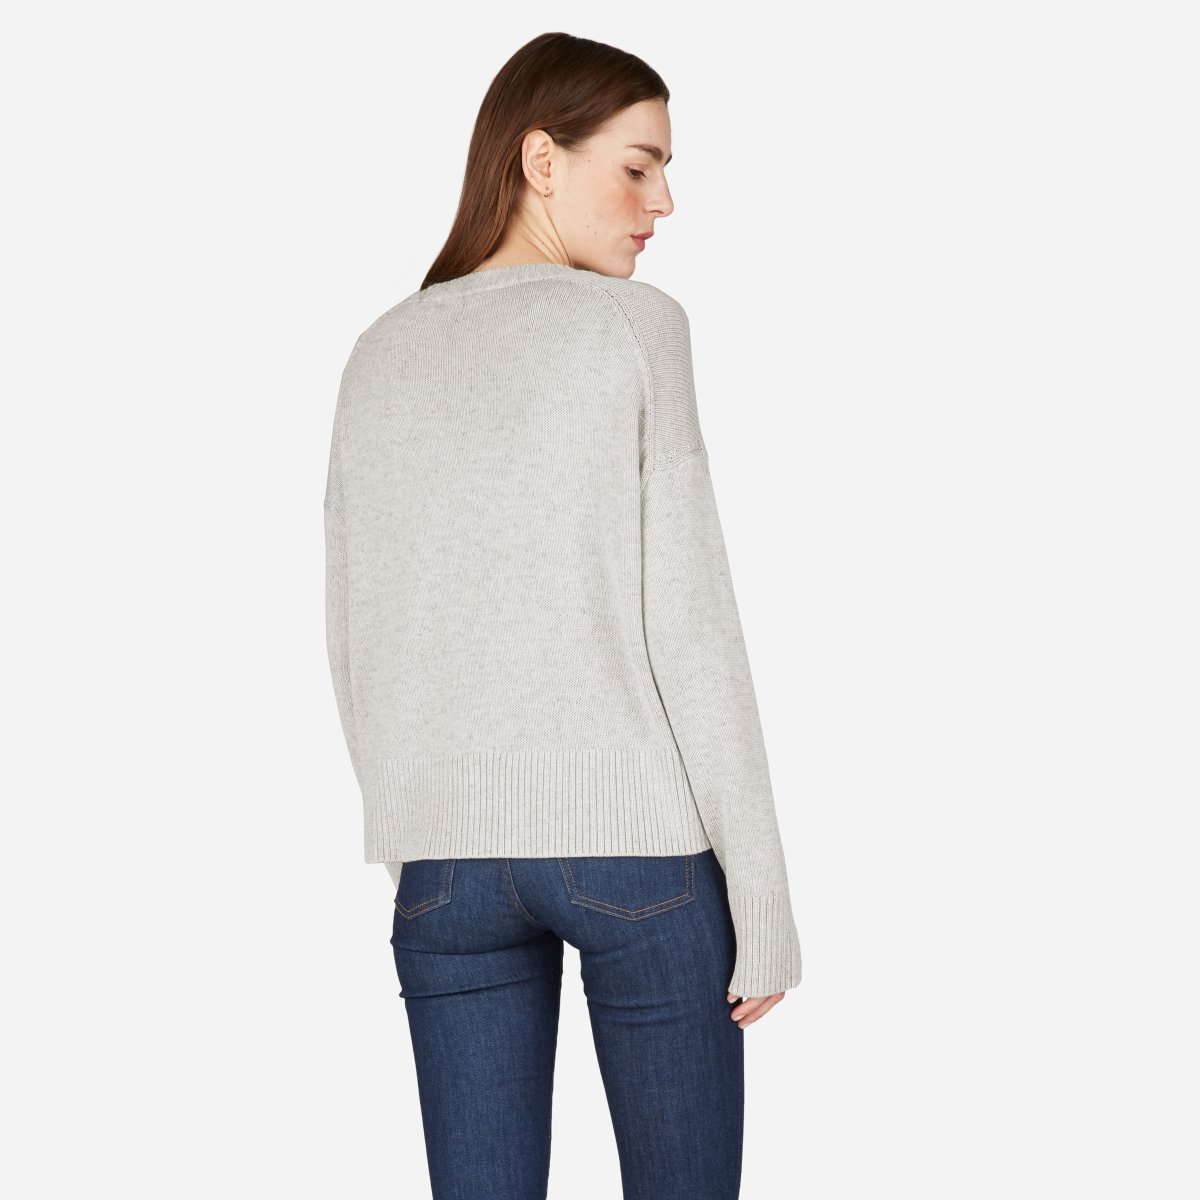 Everlane  soft cotton sweater, $68